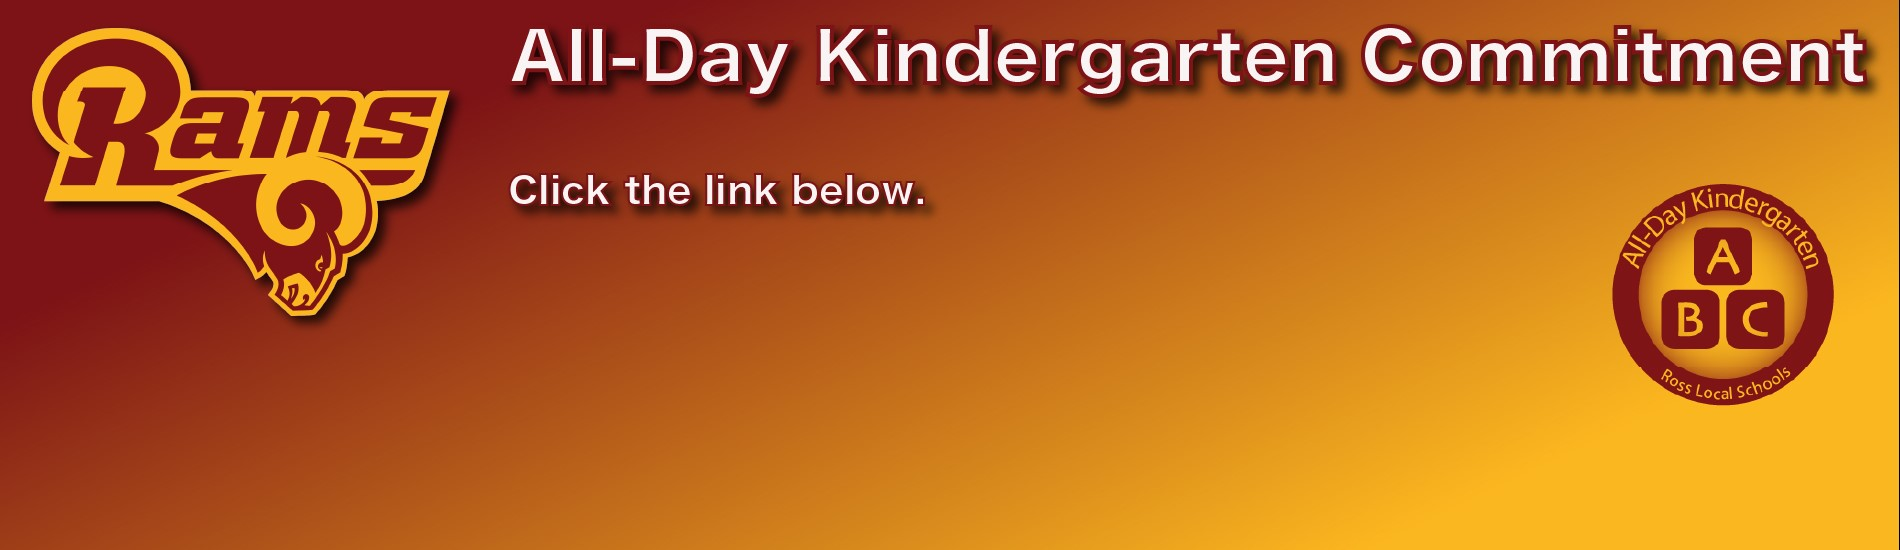 All-Day Kindergarten Commitment